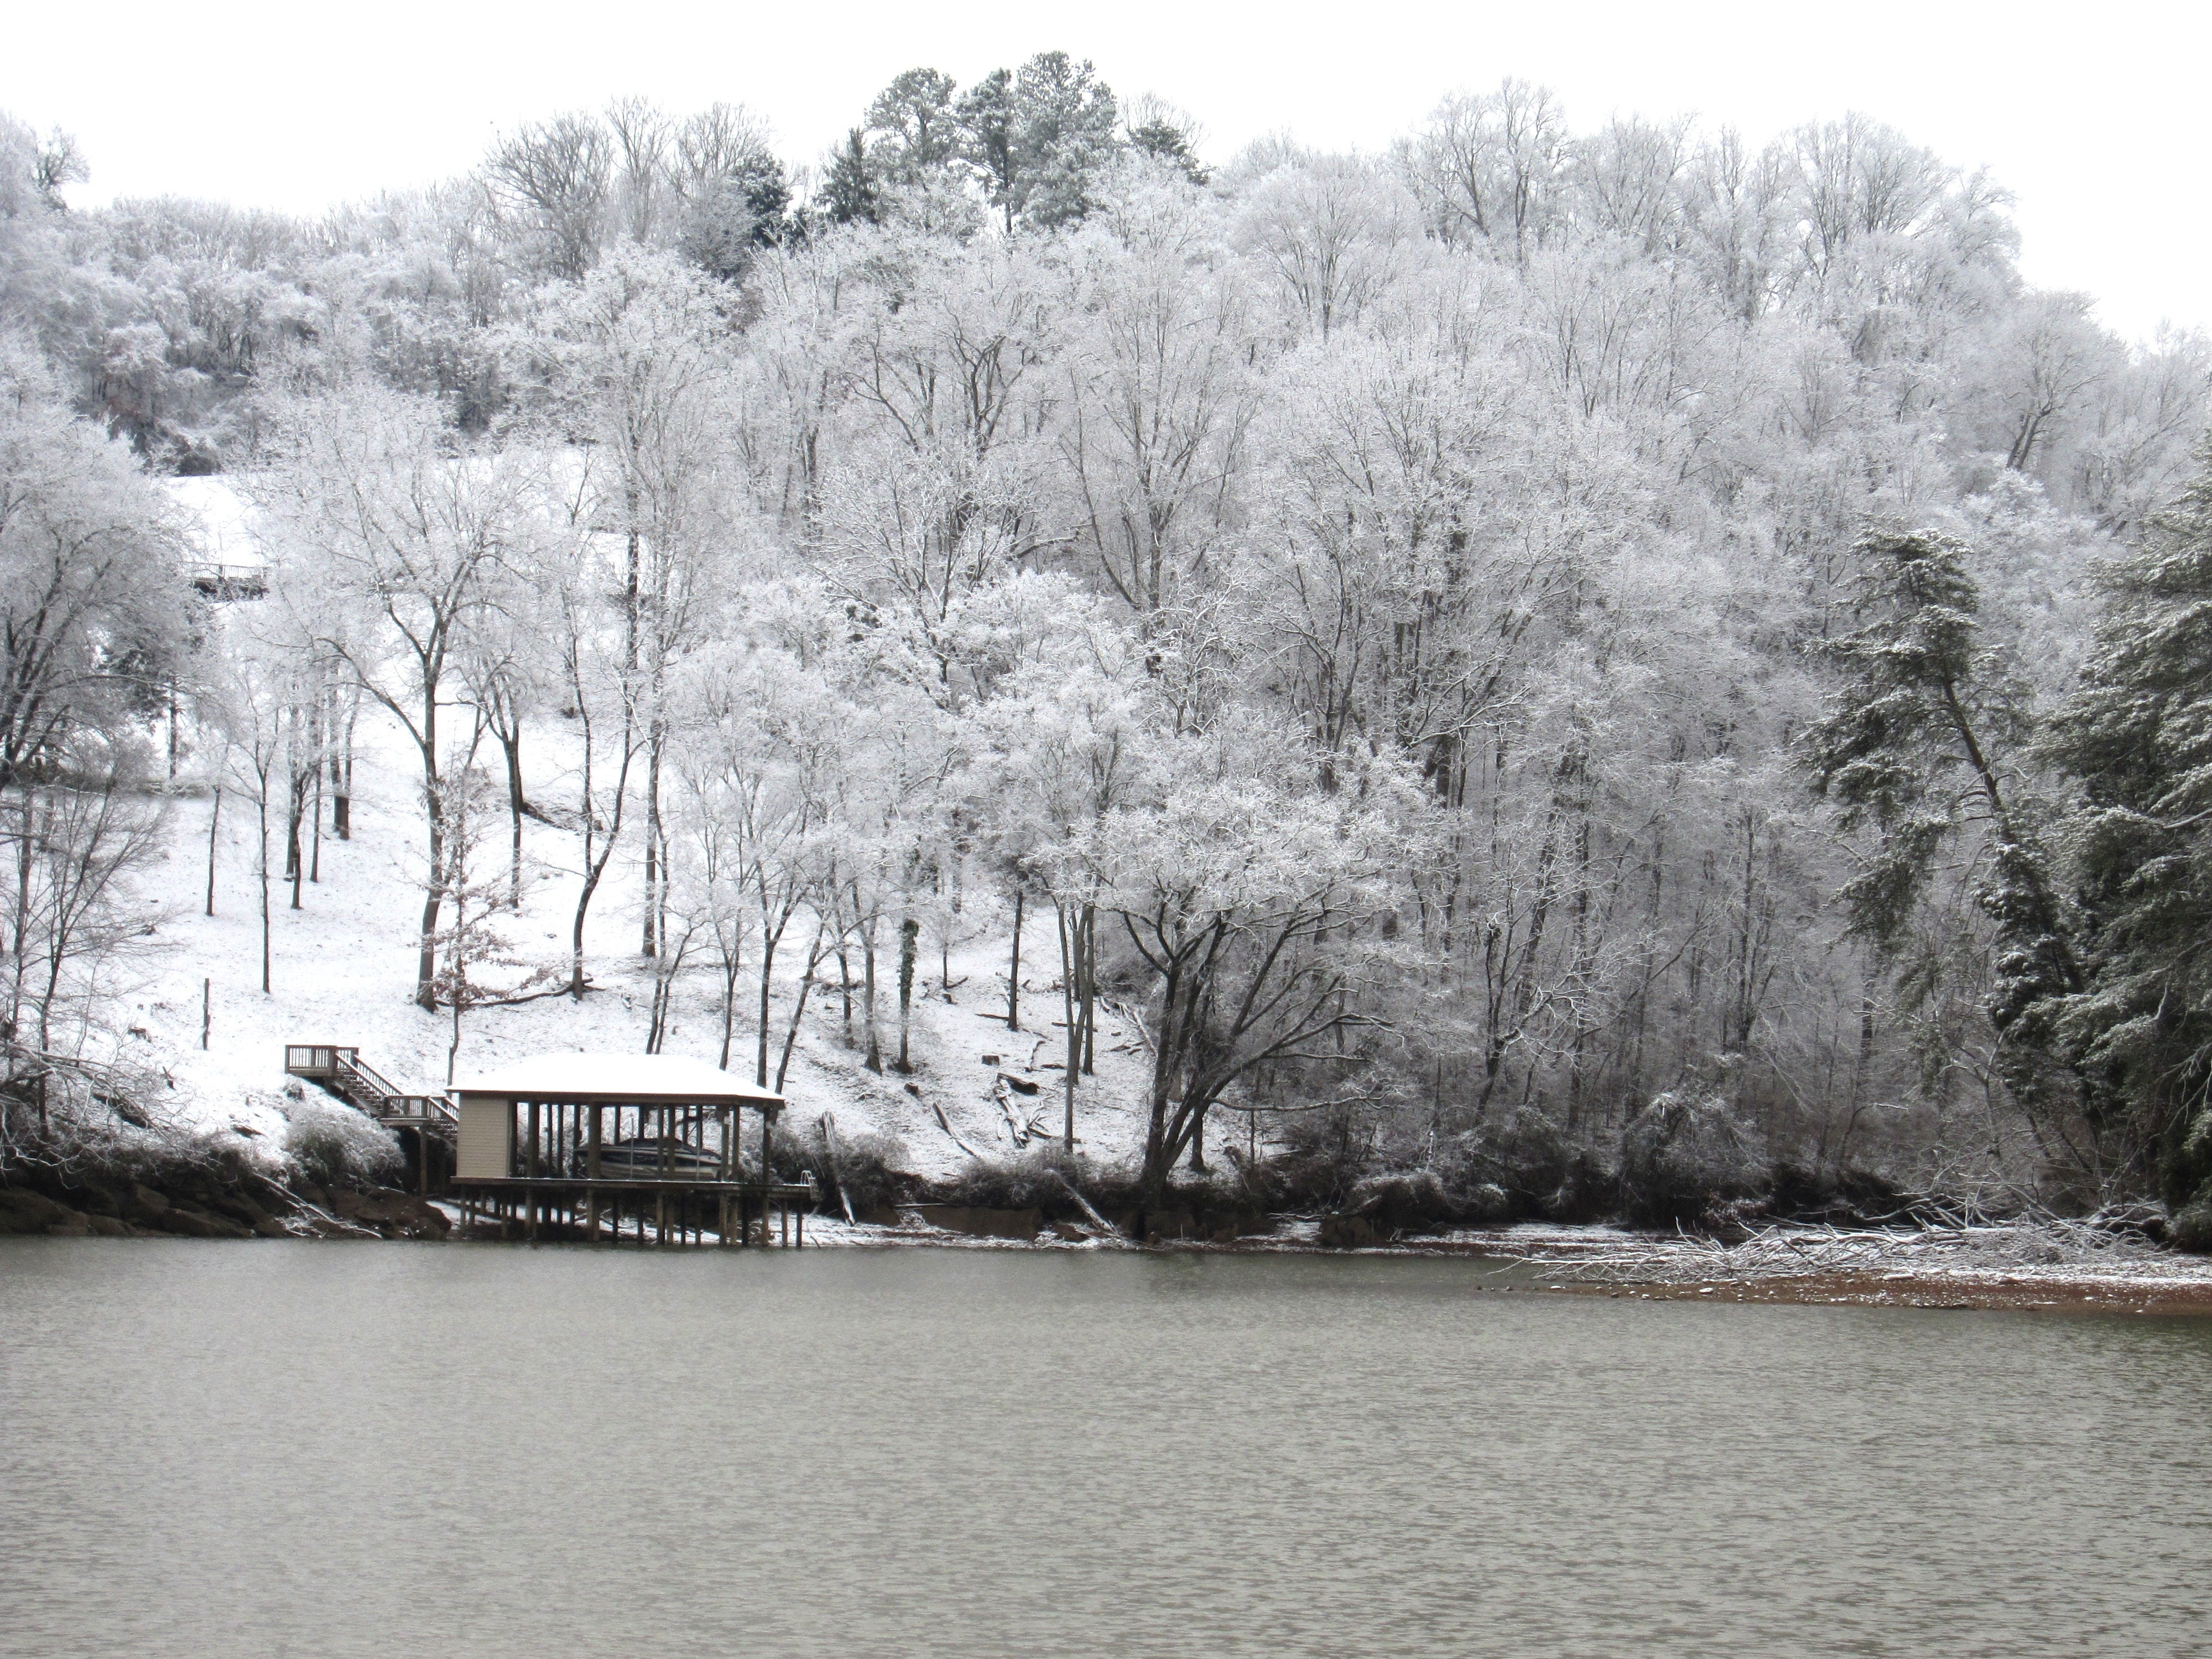 Snow blankets a hillside along Fort Loudoun Lake by Topside Road in Louisville, Tennessee, on January 29, 2019.